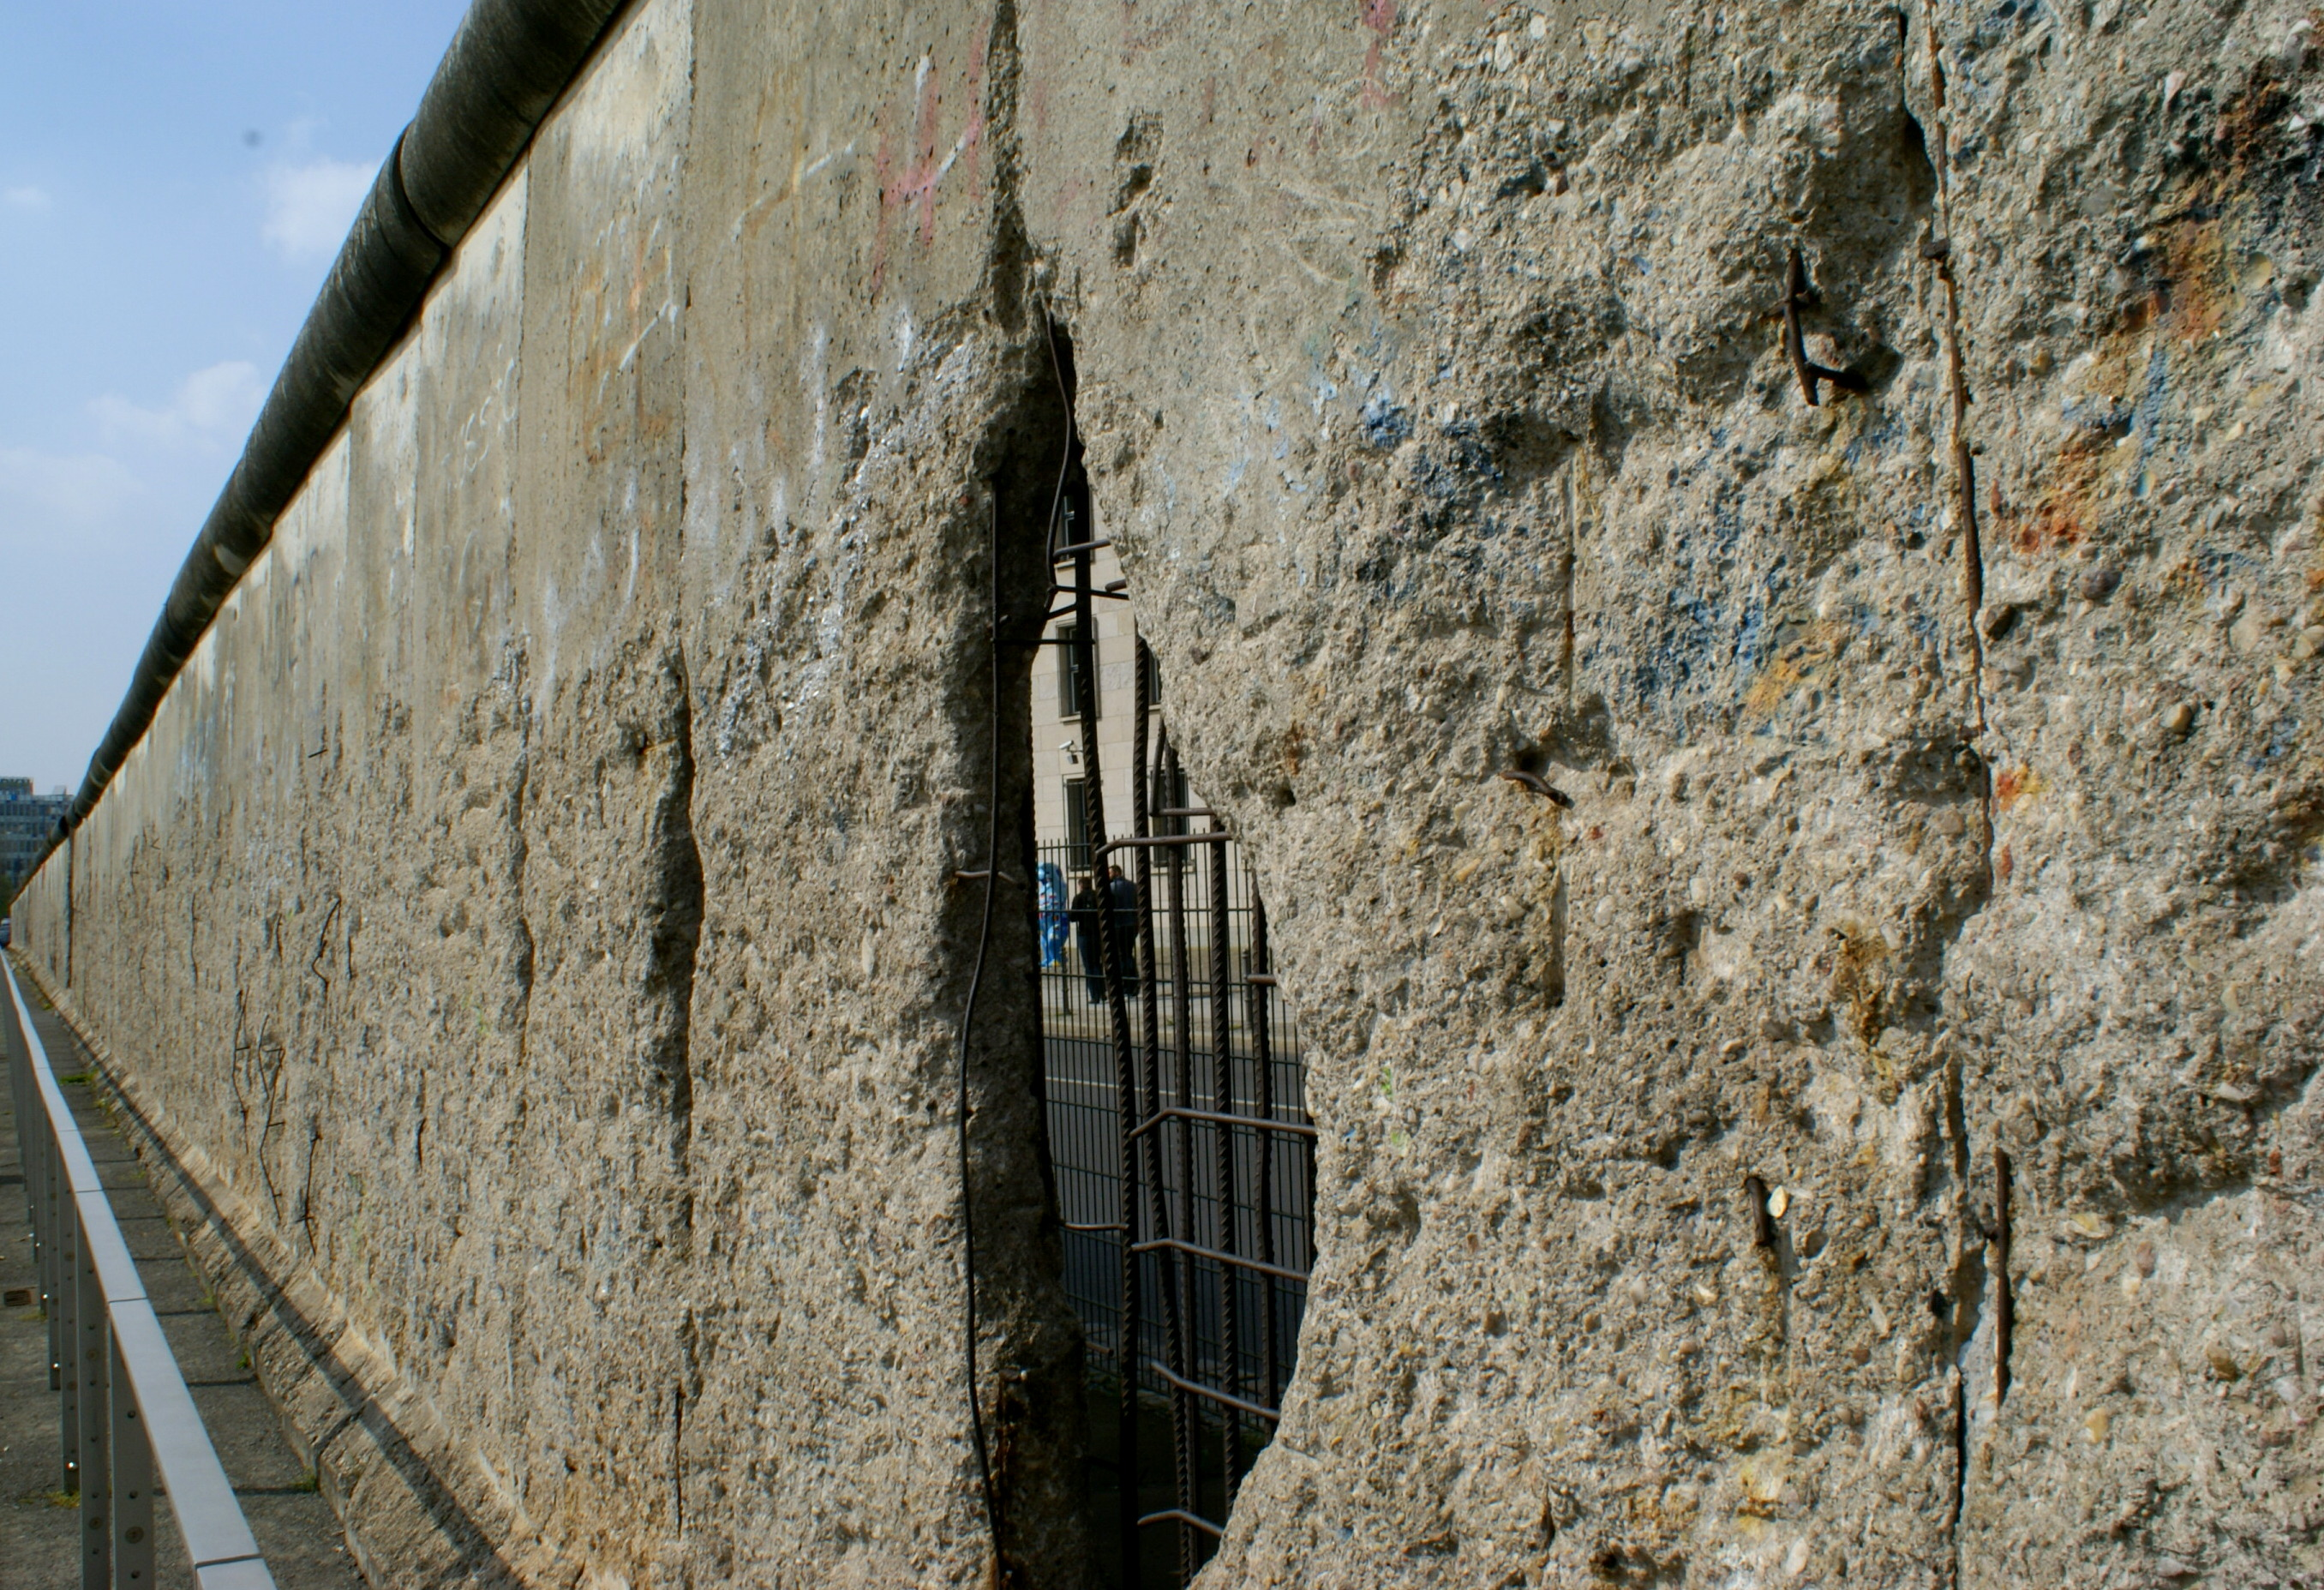 A portion of the Berlin Wall still standing on Niederkirchnerstrasse.